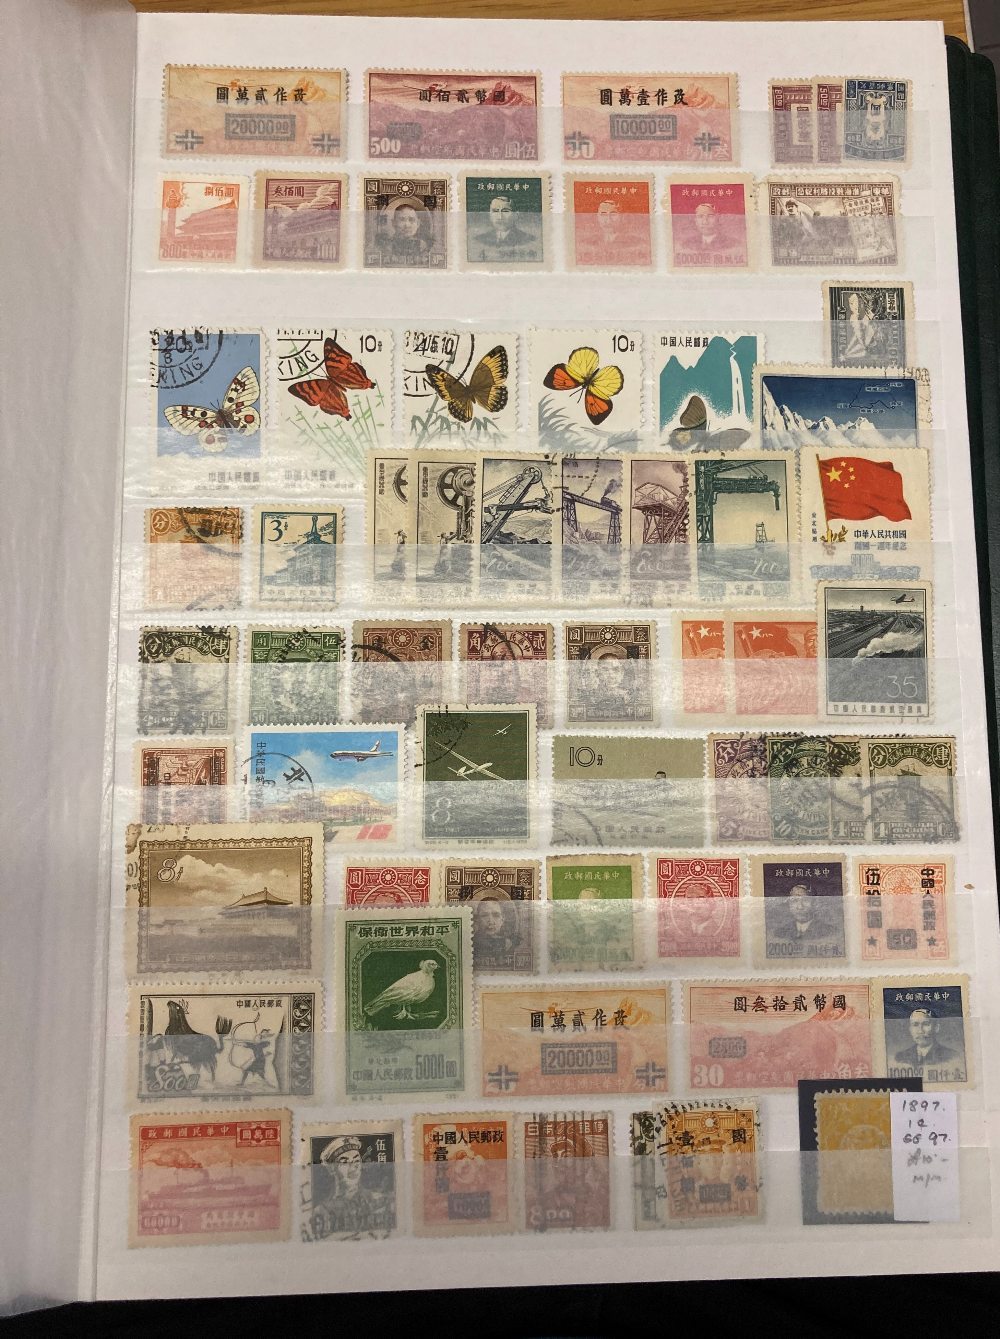 STAMPS CHINA Box with various mint & used on album pages in a stockbook etc. - Image 5 of 12